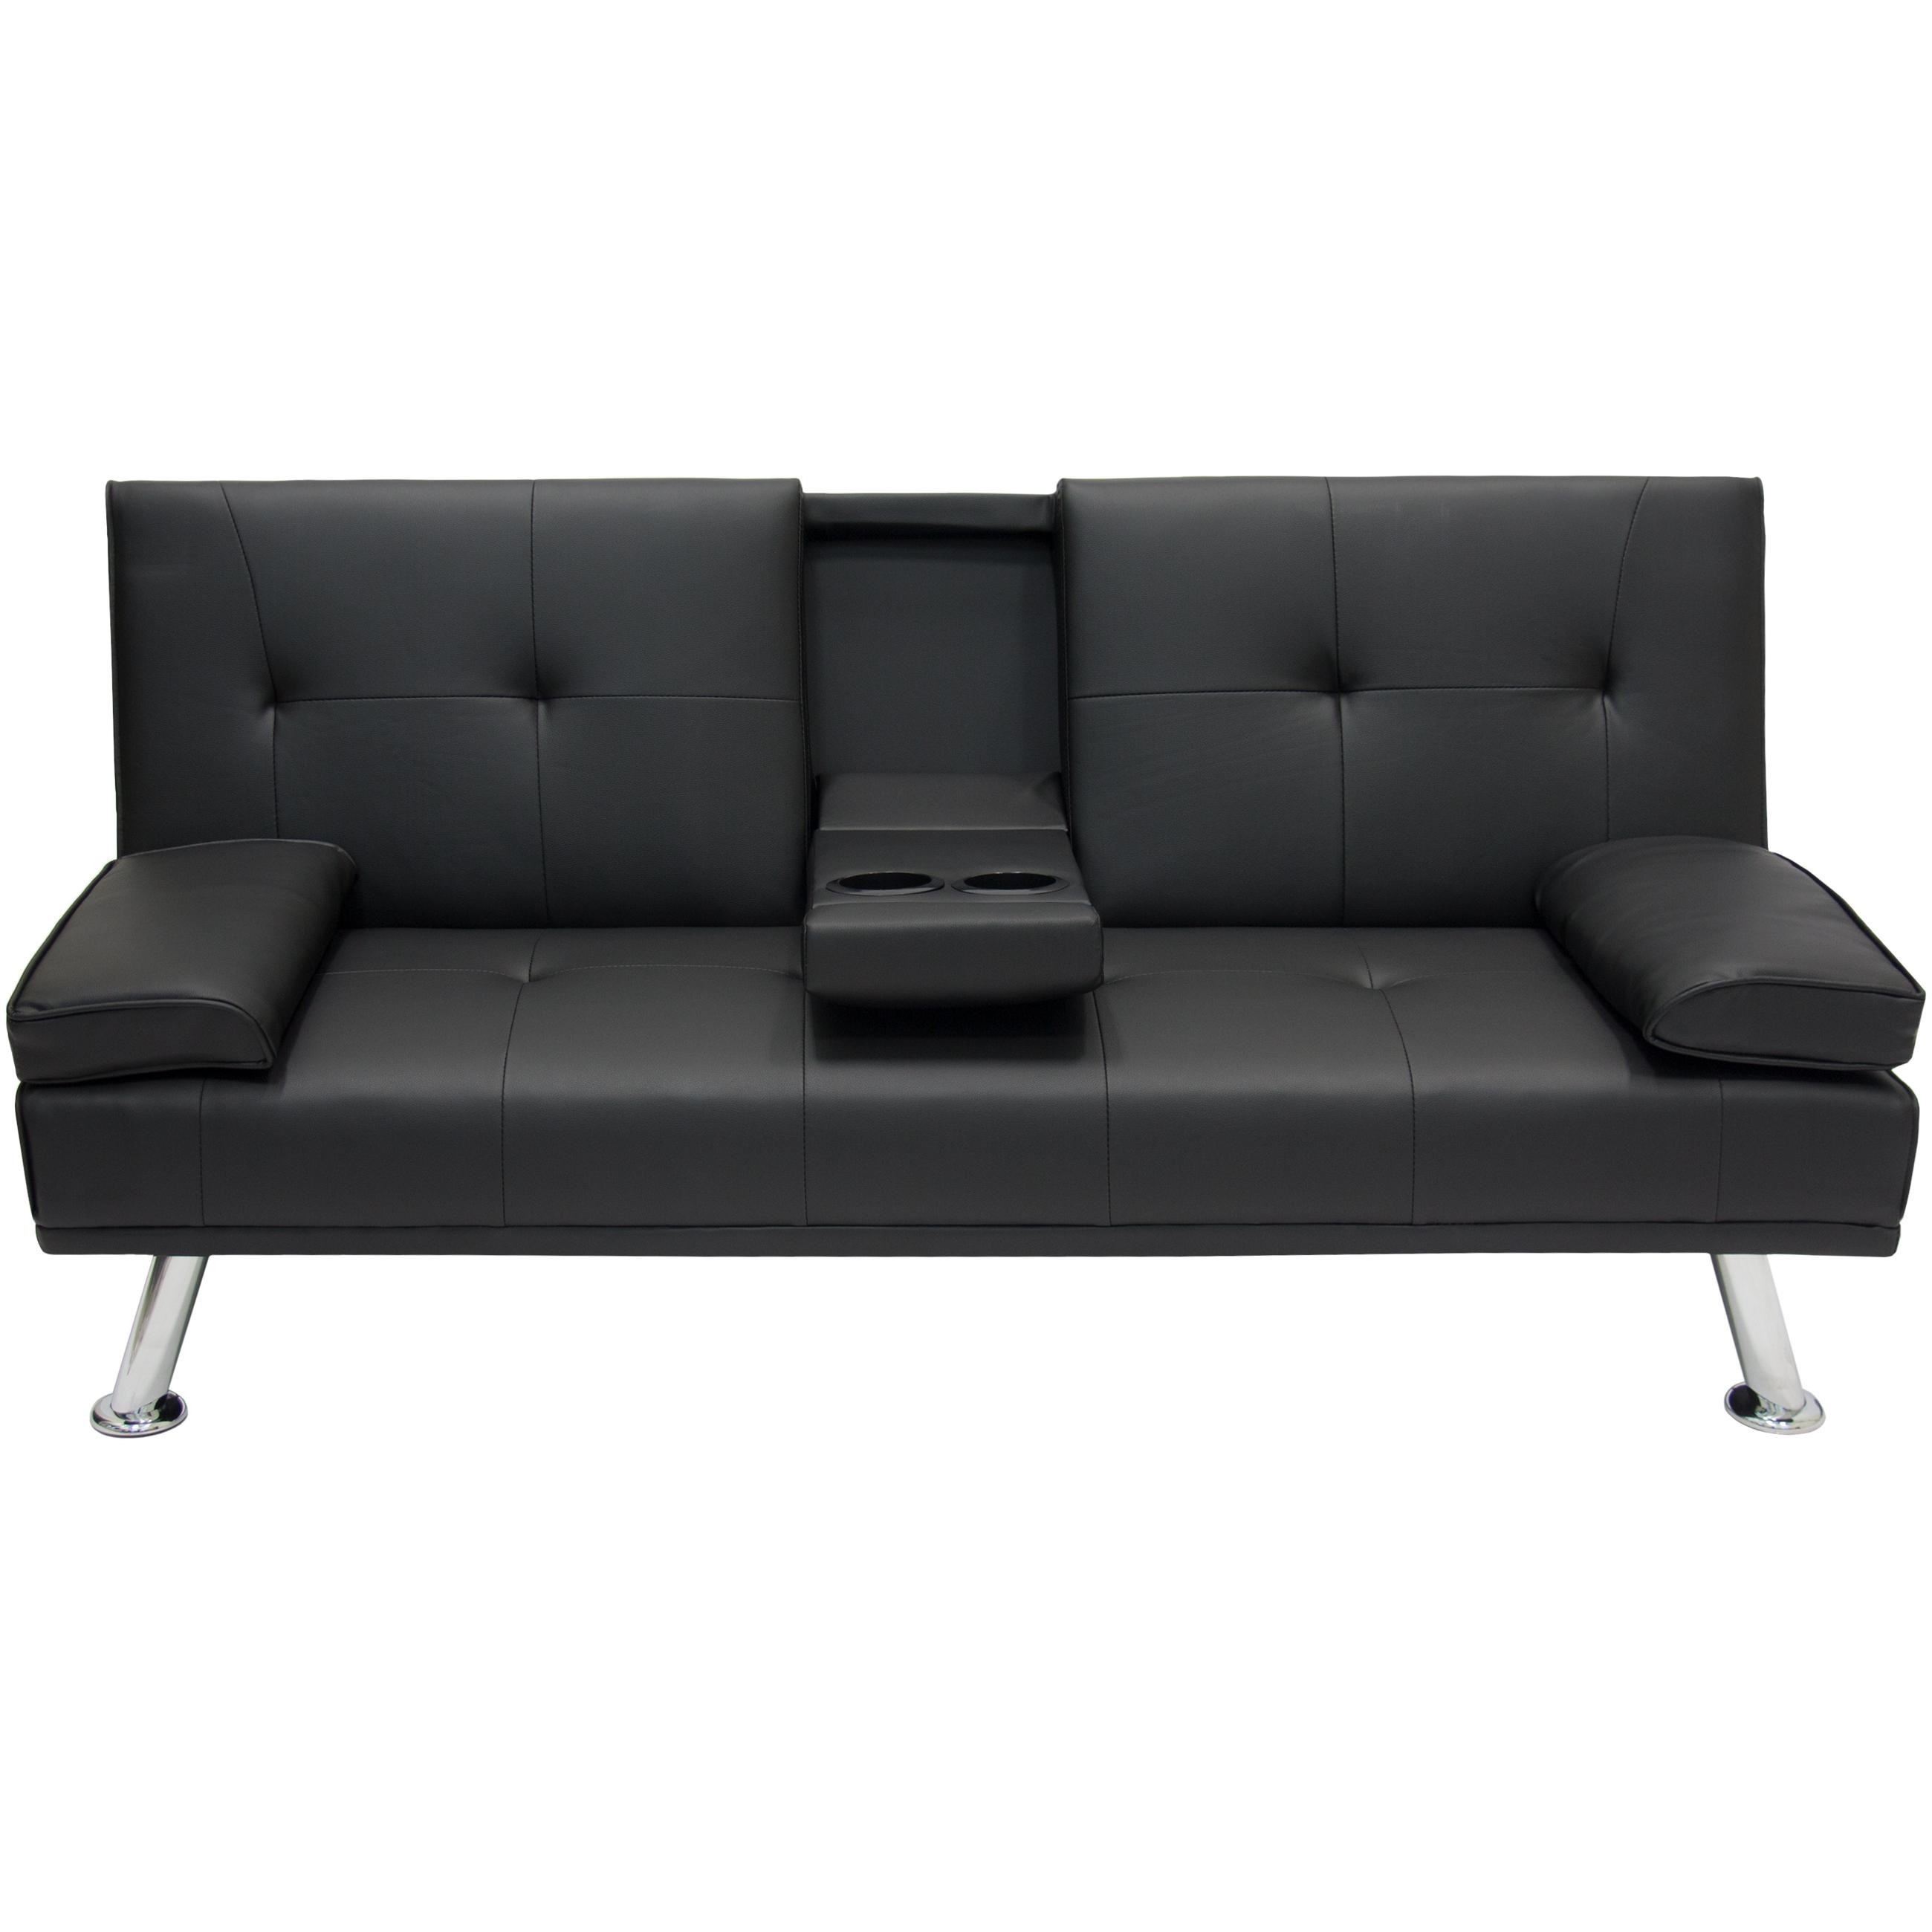 Sofa Bed – Ikea, New, Used, Loveseat, Modern, Queen | Ebay With Regard To Fold Up Sofa Chairs (View 17 of 22)